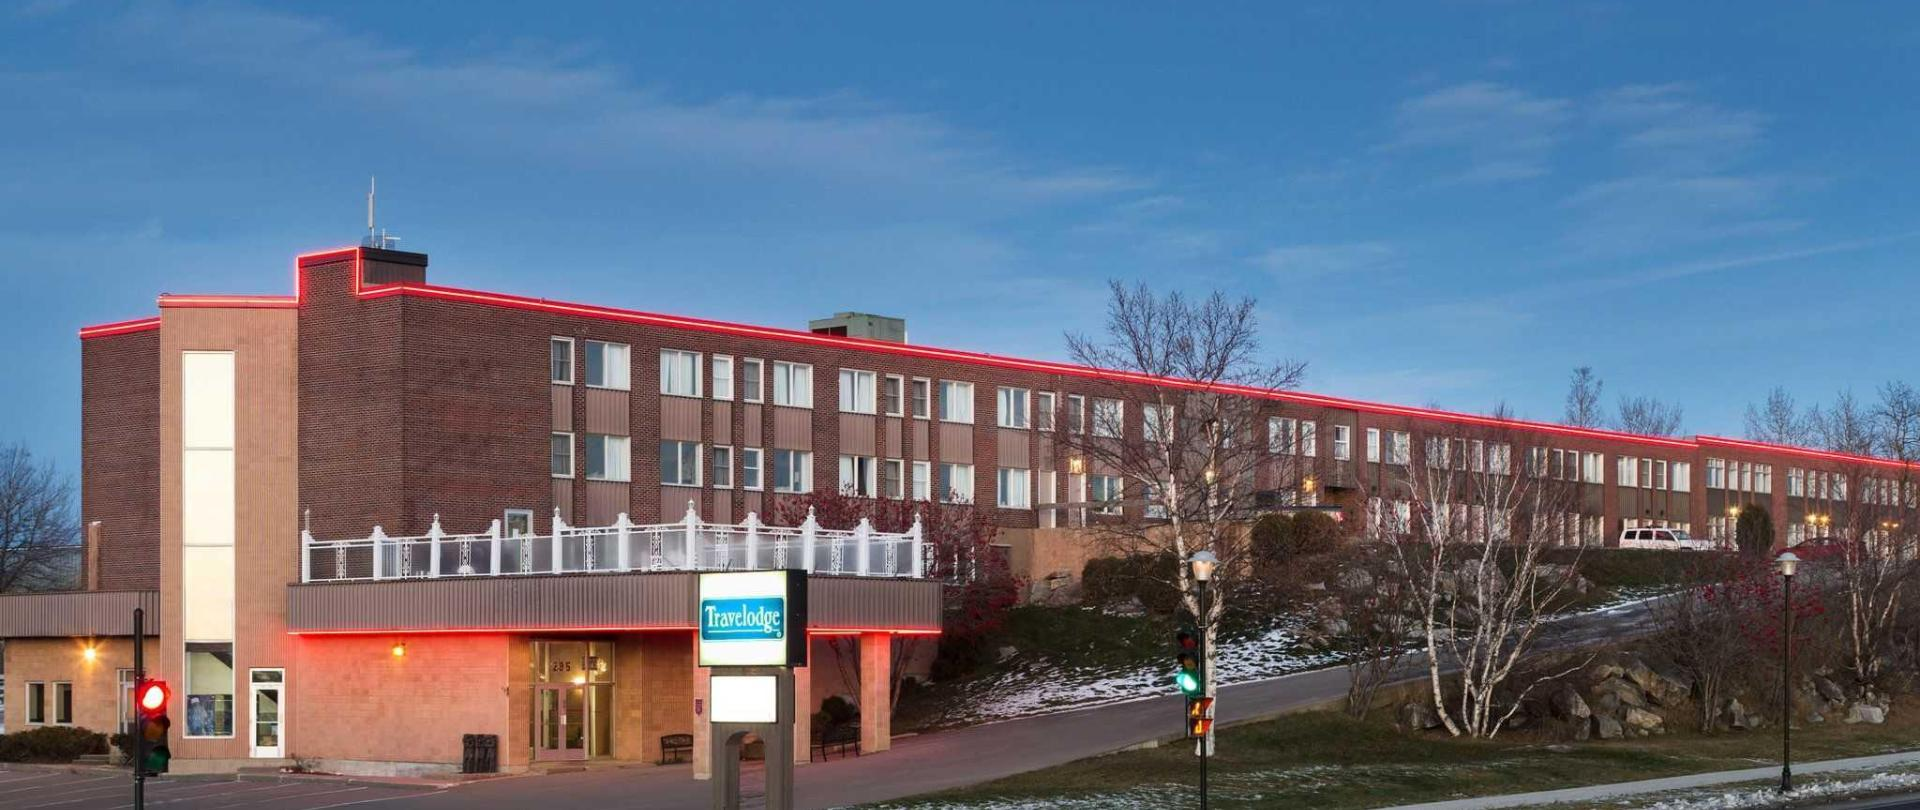 travelodge-baie-comeau-exterior-1242616-2.jpg